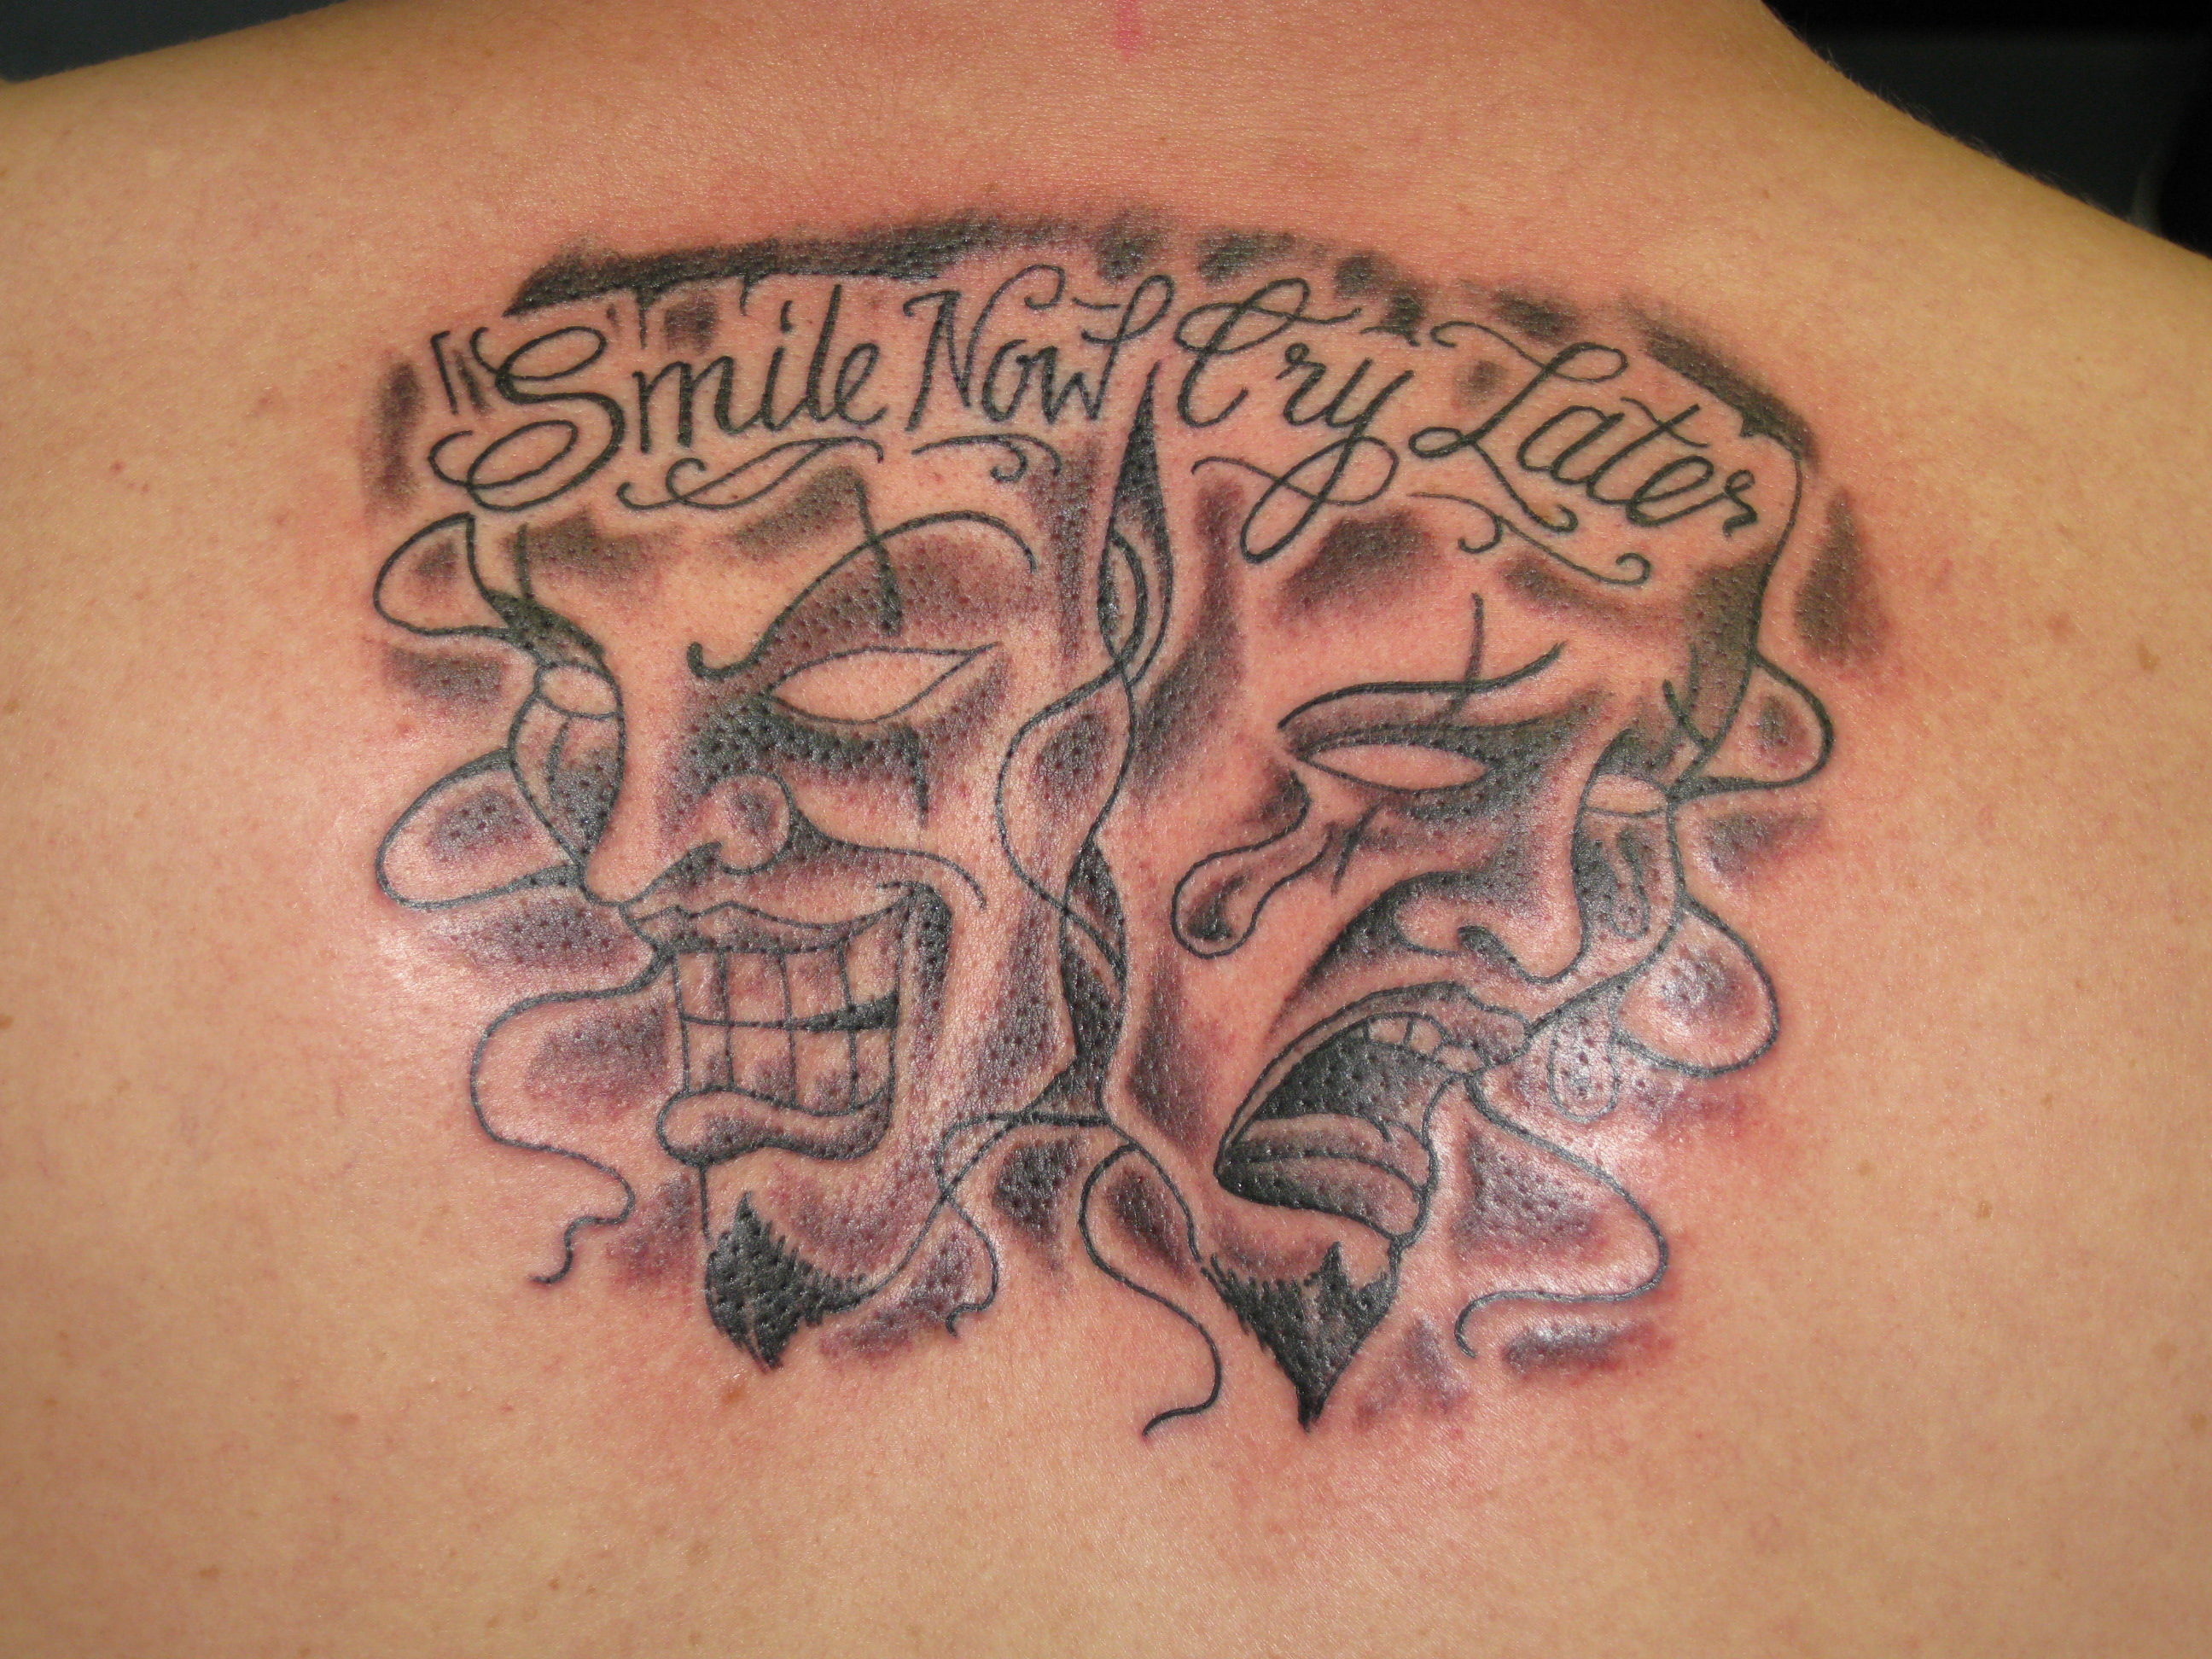 Irish Street Tattoo Smile Now Cry Later Irish St Tattoo